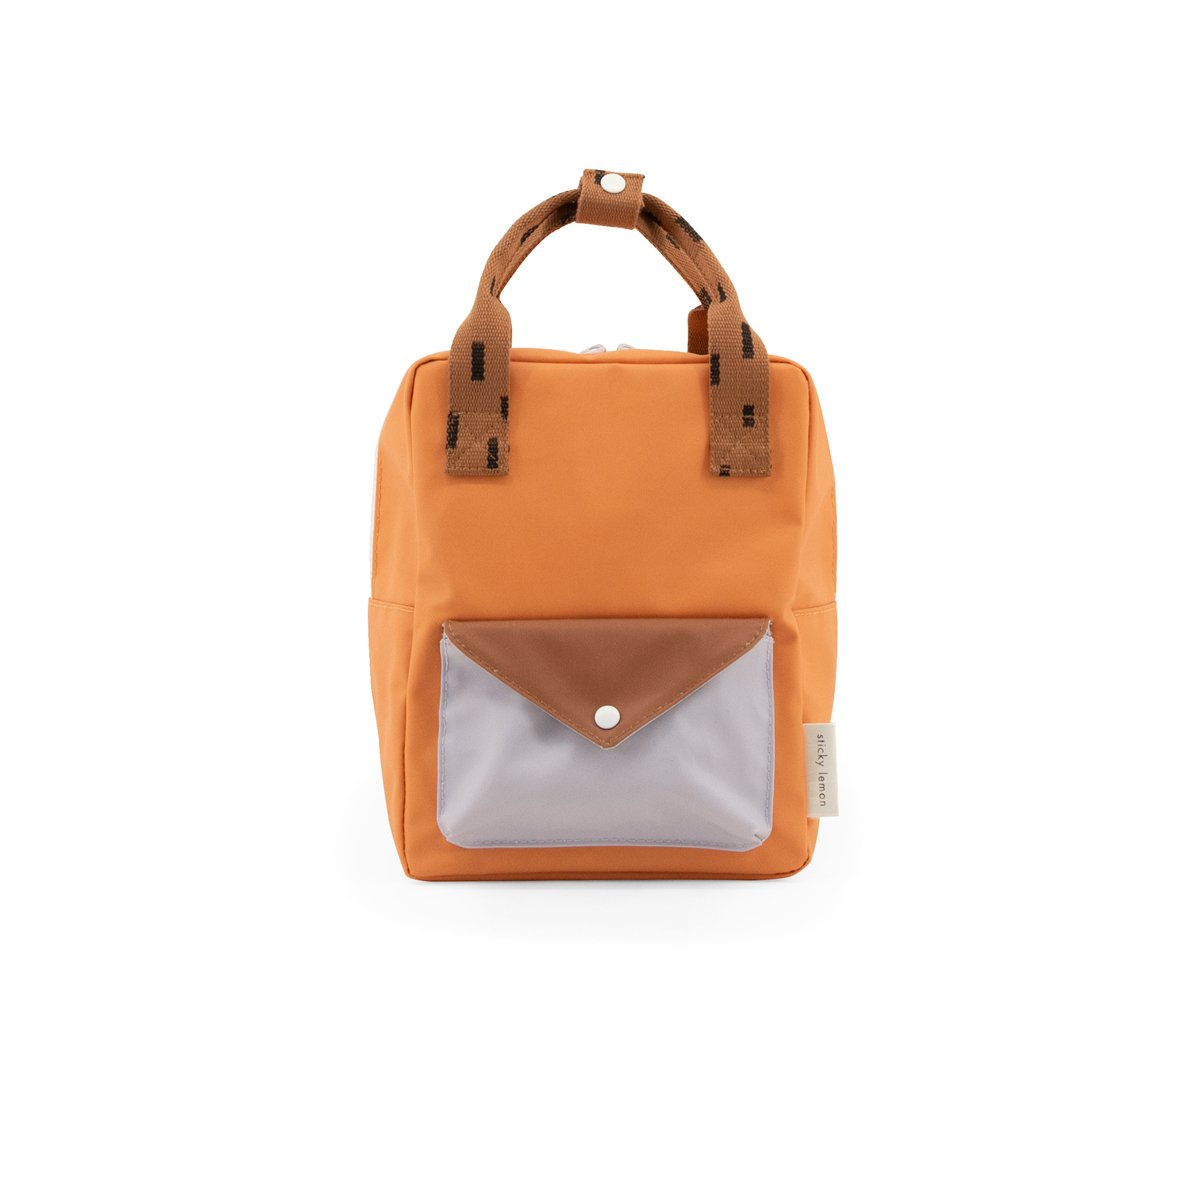 Sticky lemon small backpack sprinkles | envelope | apricot orange, cinnamon brown + lavender